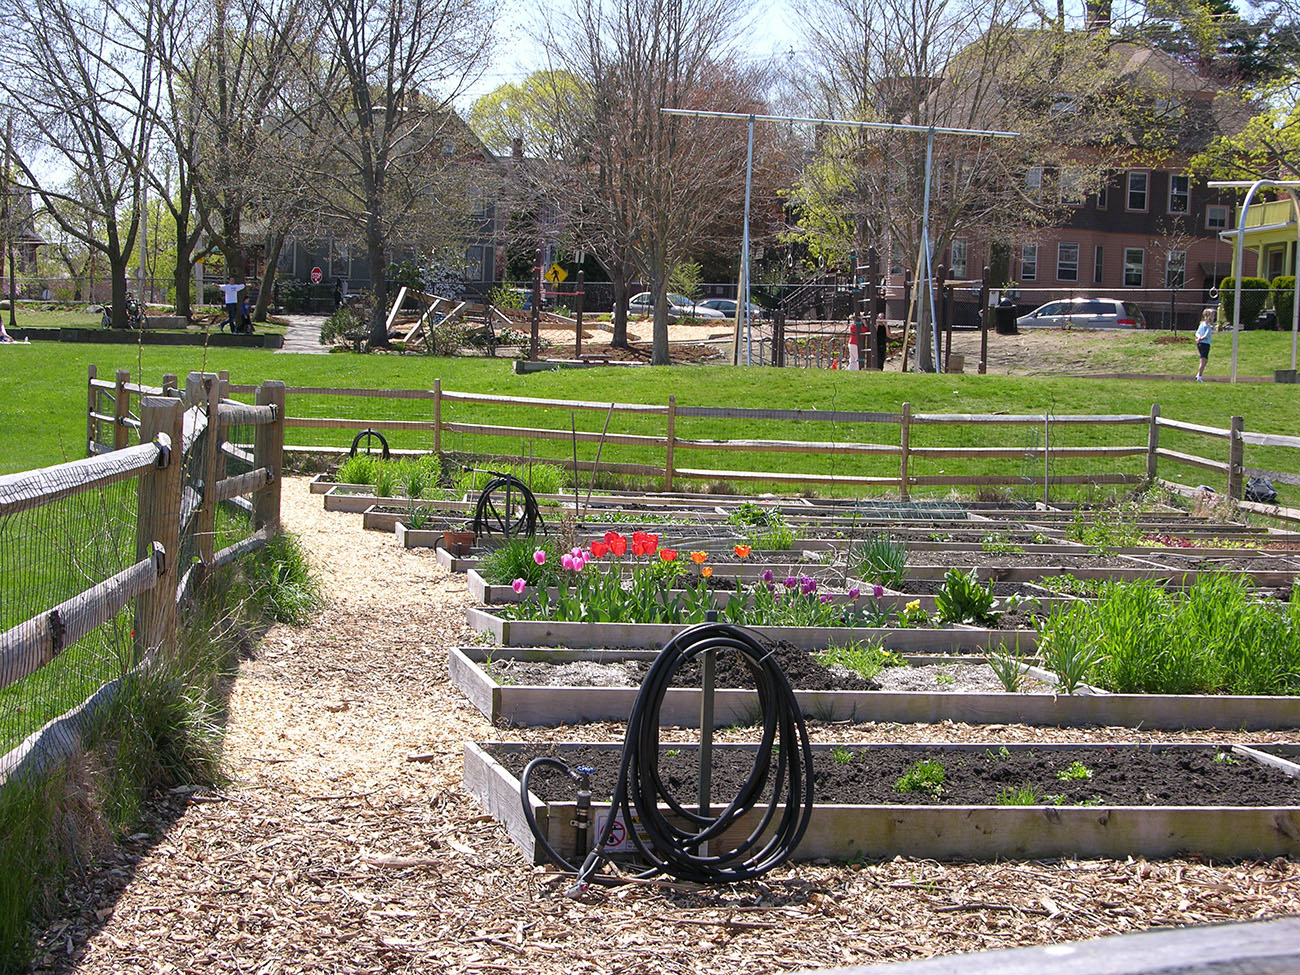 Figure 11.5. Community garden plots within a larger park area. (Photo by J. Buxton)